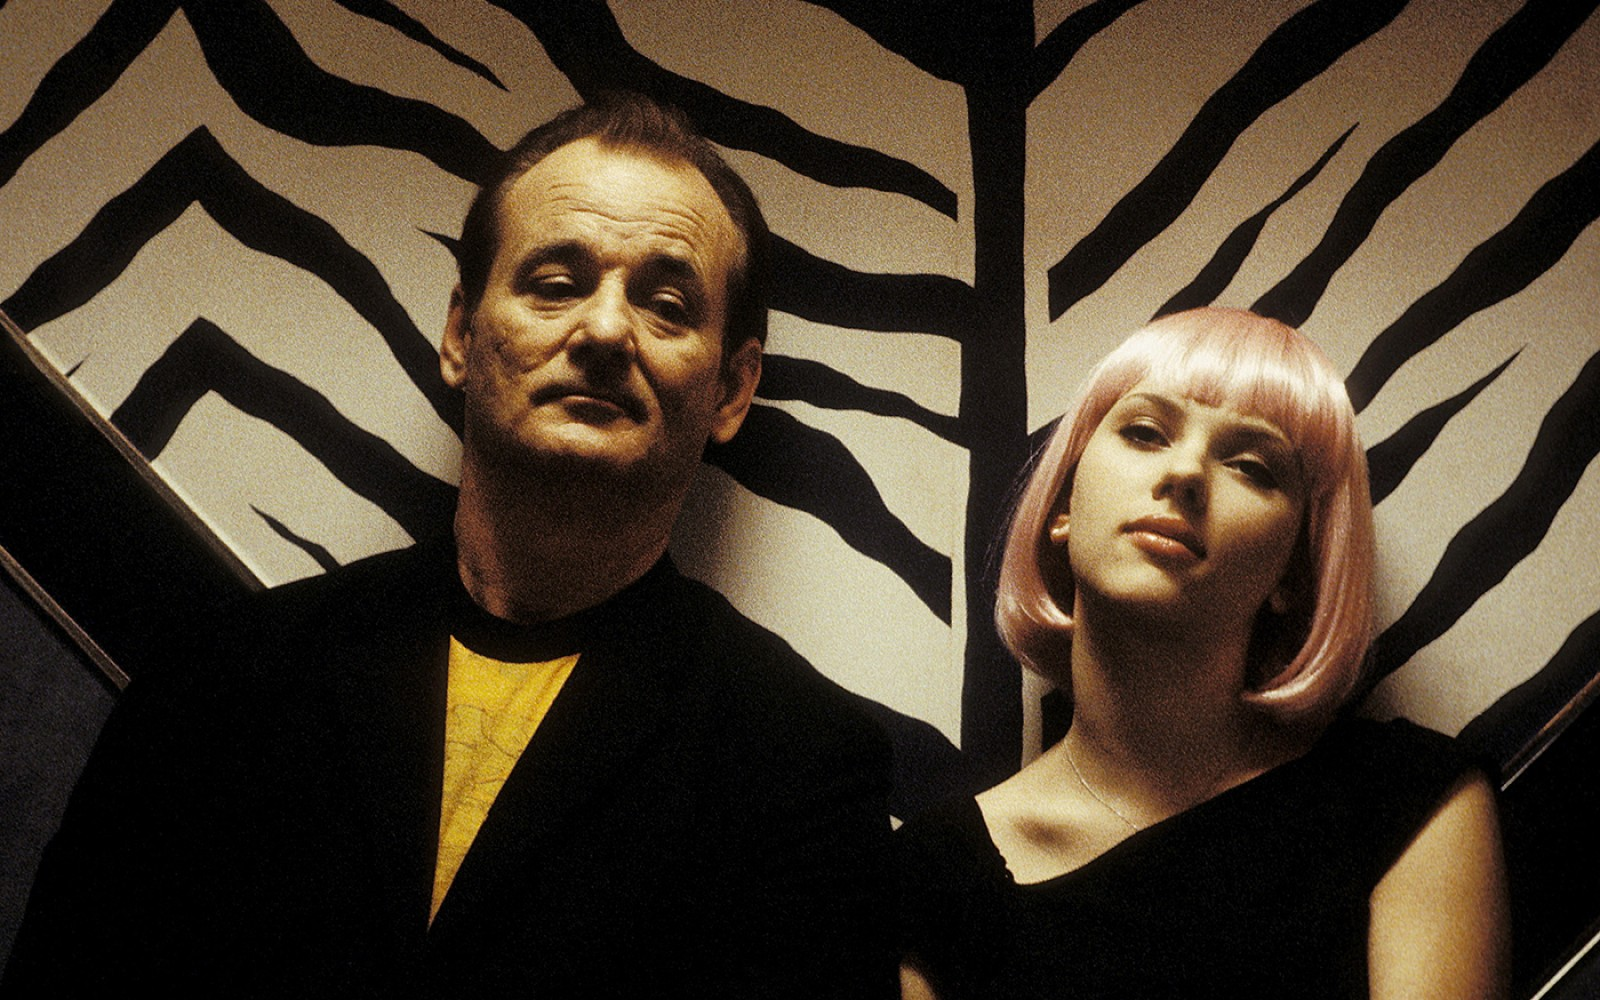 22 'Lost In Translation' Quotes That'll Make You Feel Less Alone When Life Seems Hopeless